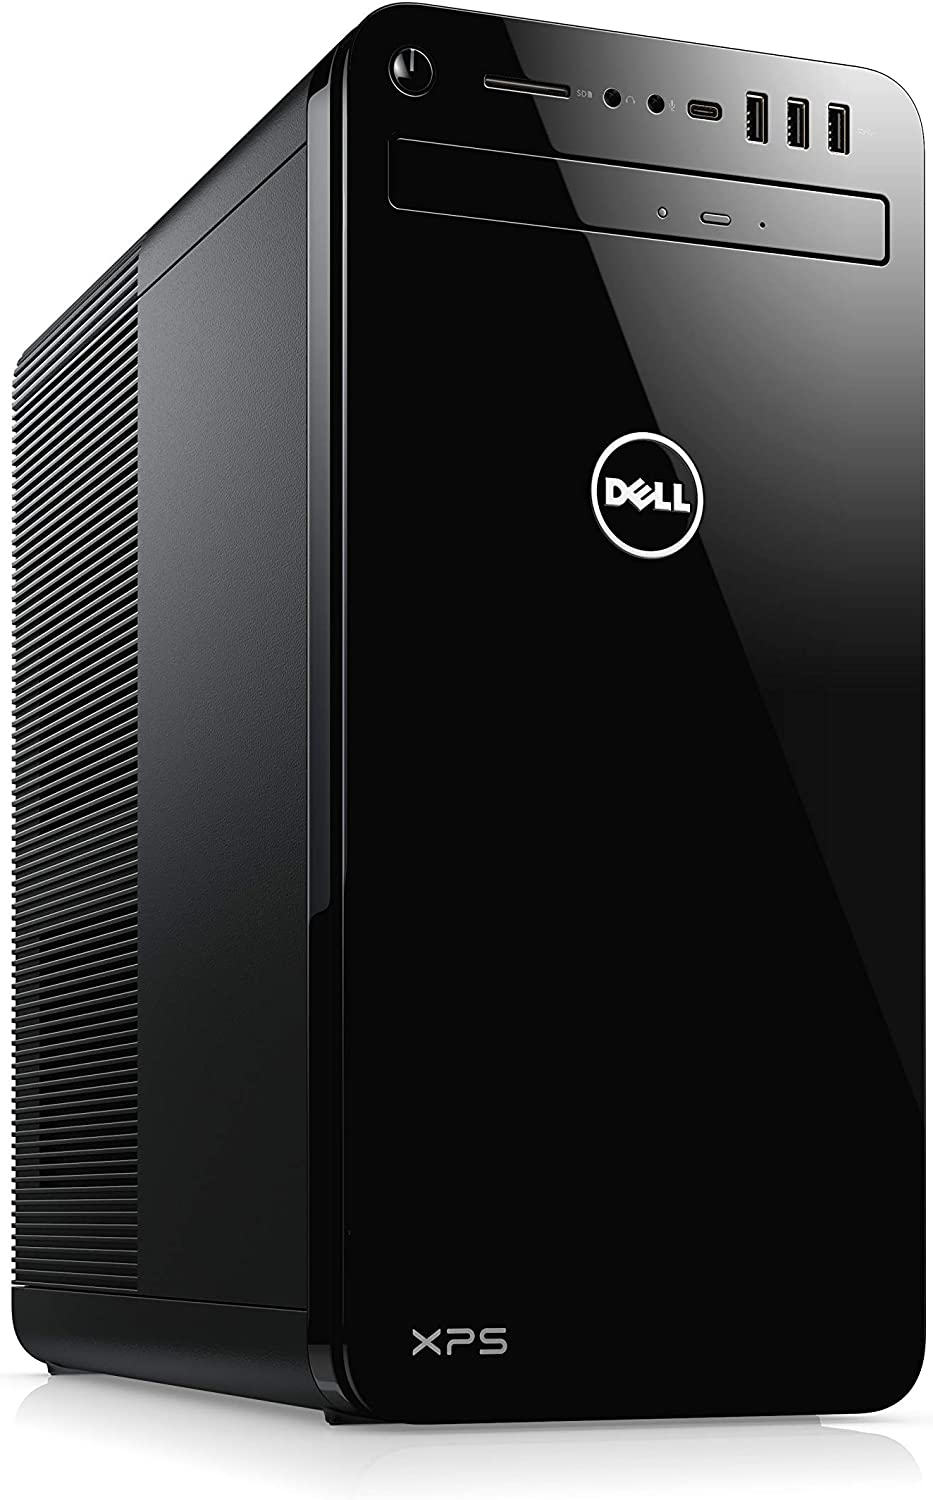 Dell Inspiron XPS 8930 PC Ordinateur de Bureau Unité centrale DVD-RW Black (Intel Core i7, RAM 8Go, 2To + SSD 512Go, NVIDIA GeForce GTX 1660Ti 6GB)